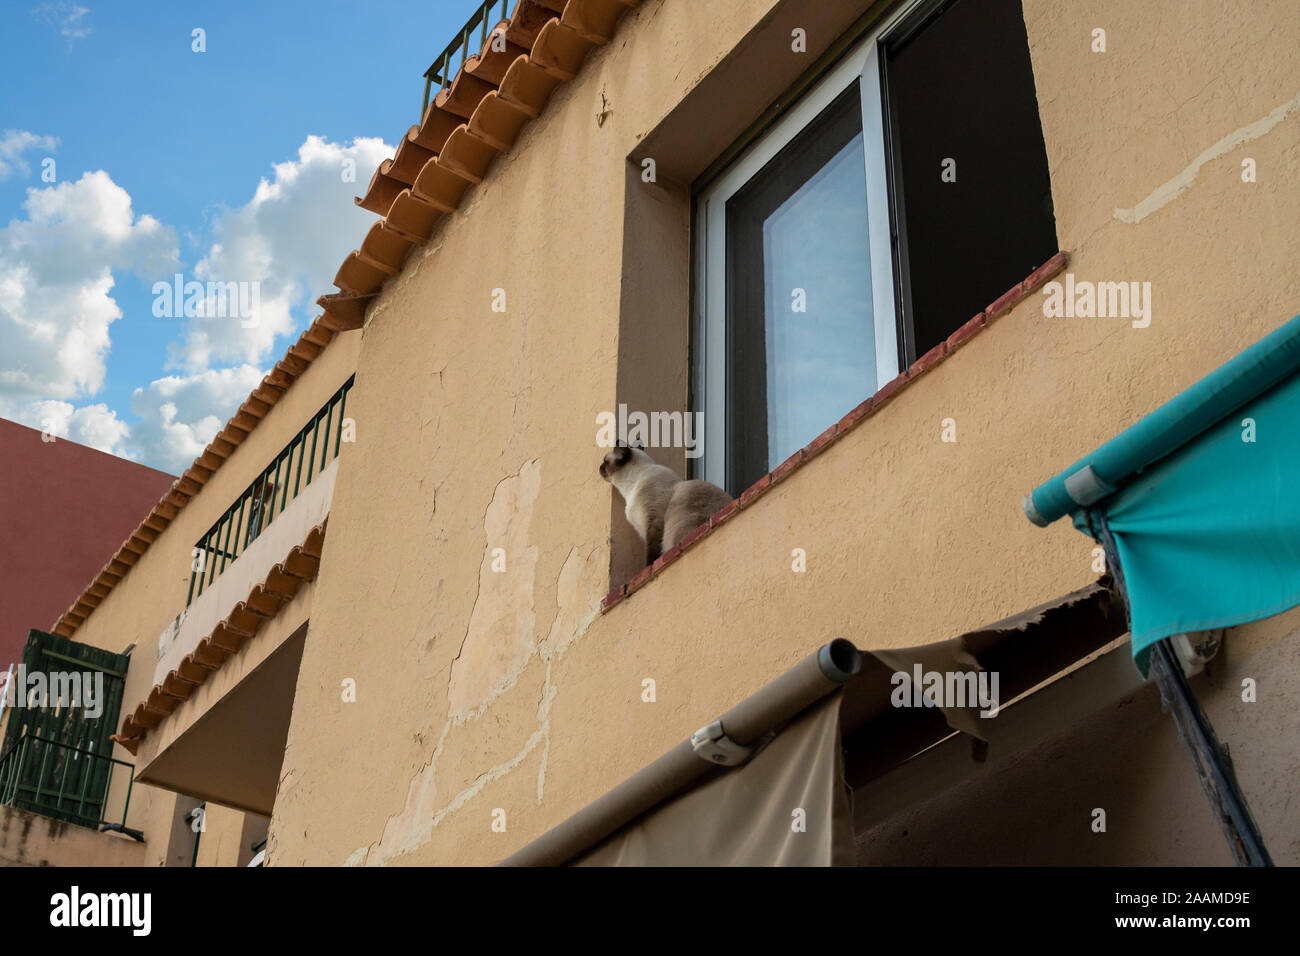 A Siamese cat sits on a window ledge looking up at the sky in Villefrance Sur Mer, France. Stock Photo